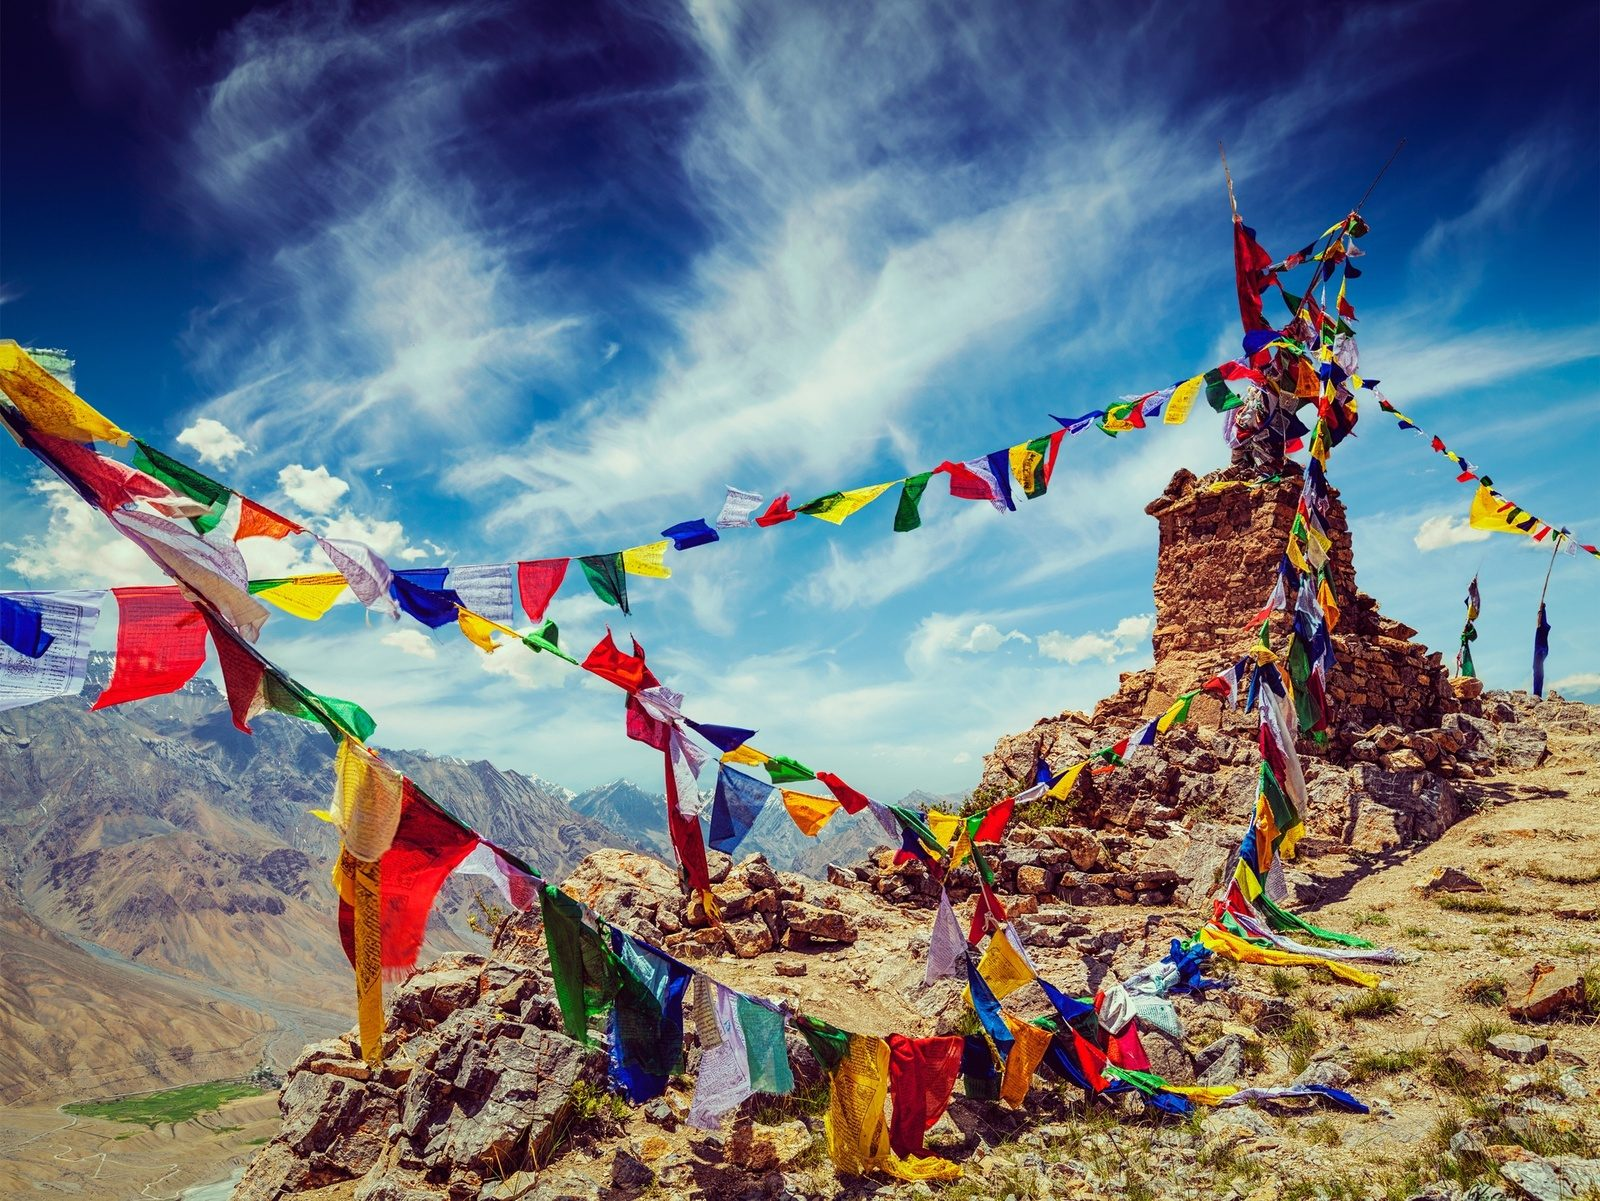 5 Unmissable Treks in the Indian Himalaya - Much Better Adventures Magazine